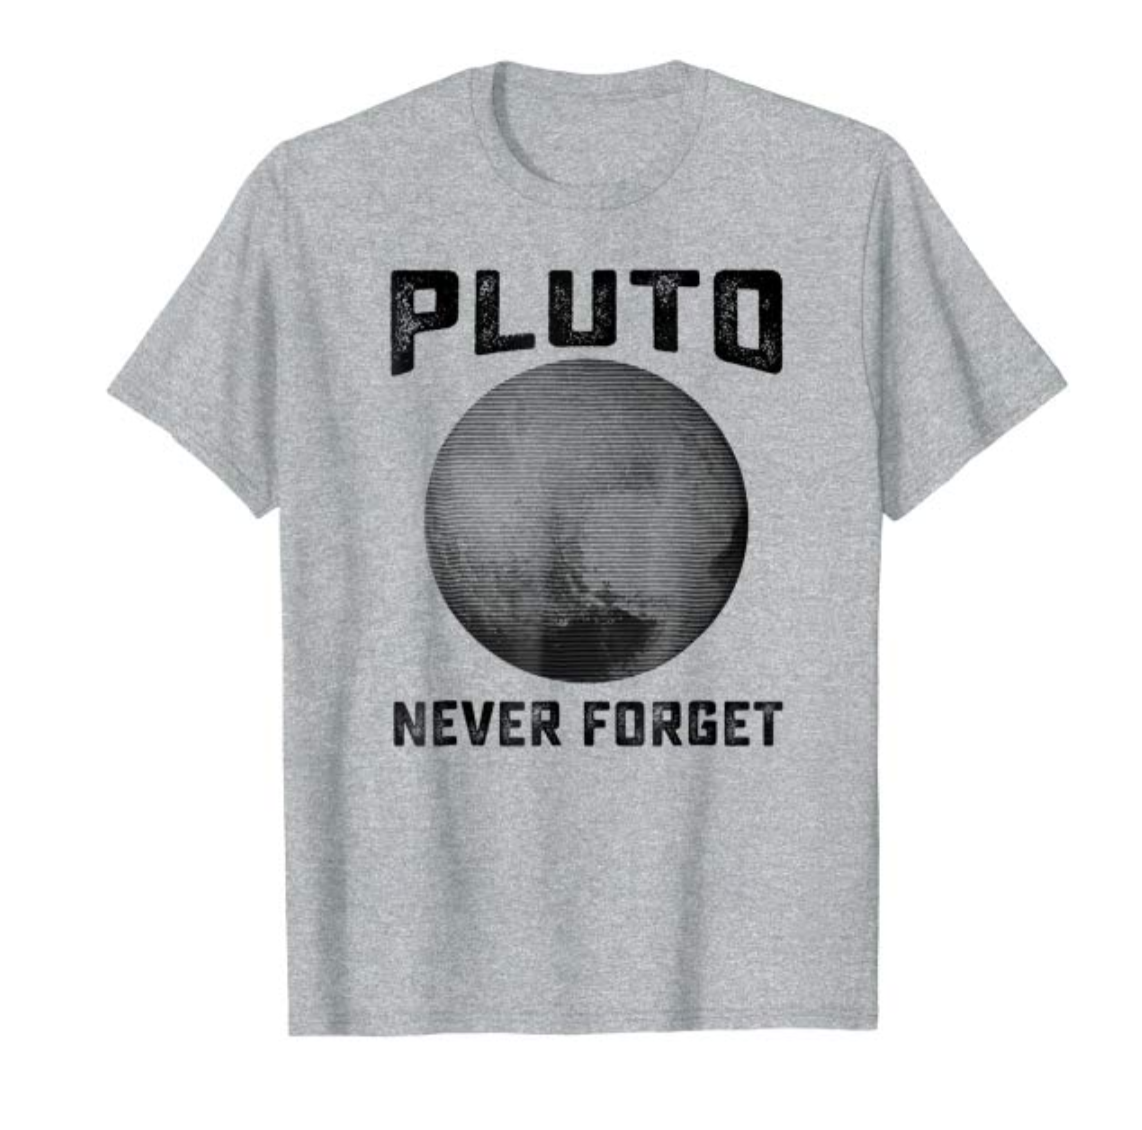 """pluto never forget"" graphic tee gift ideas on amazon"